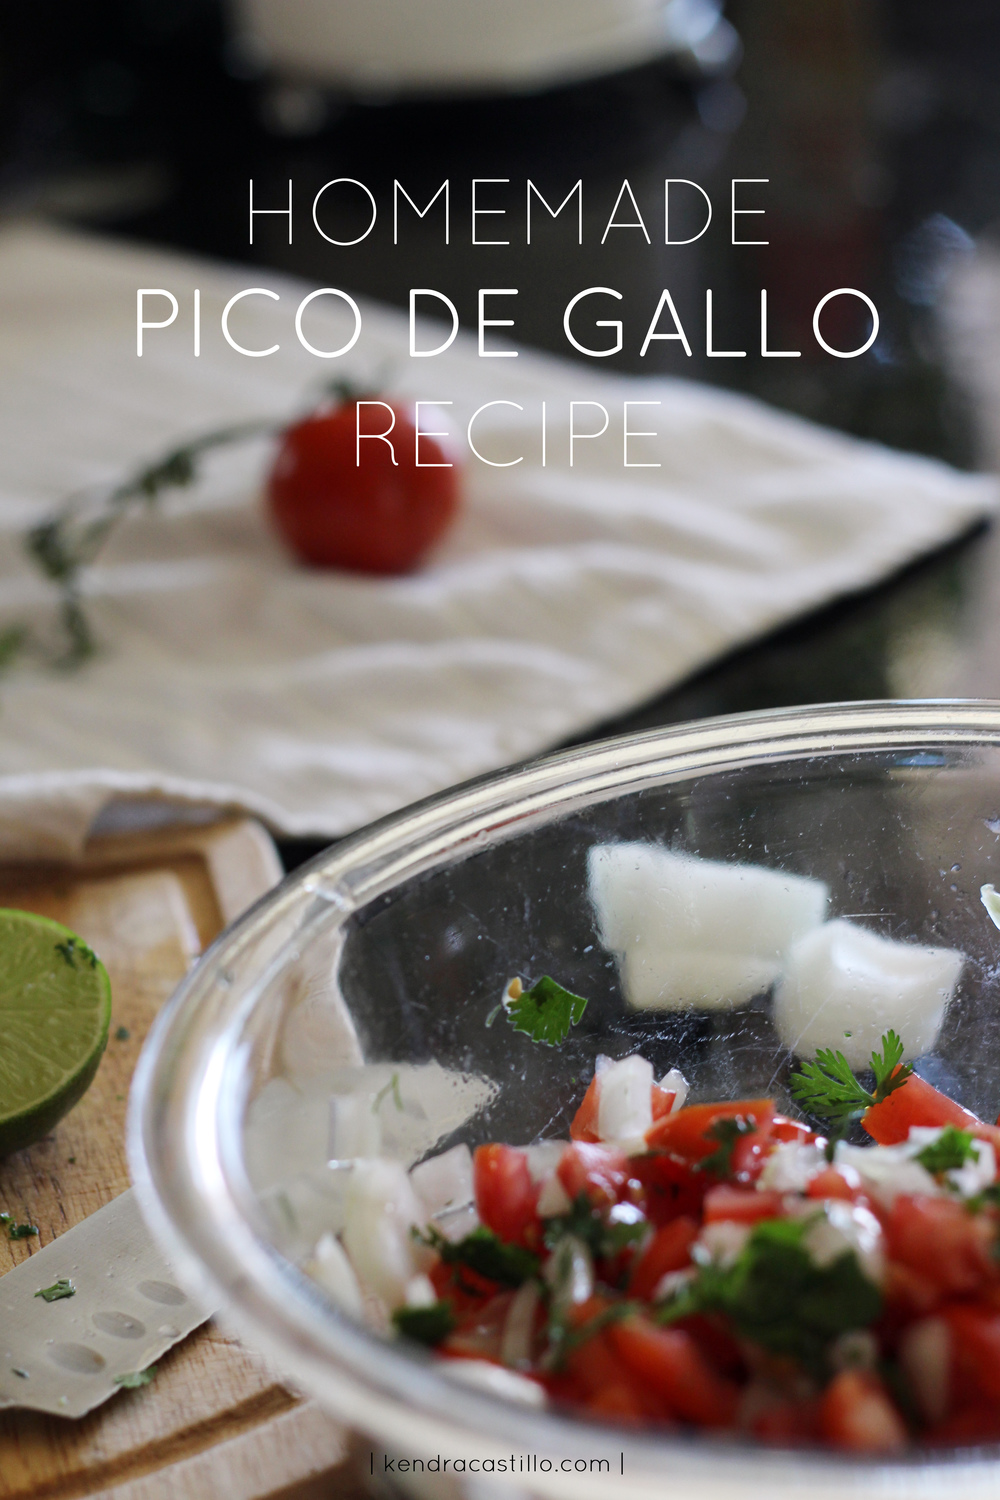 Kendra Castillo: Pico De Gallo Recipe.